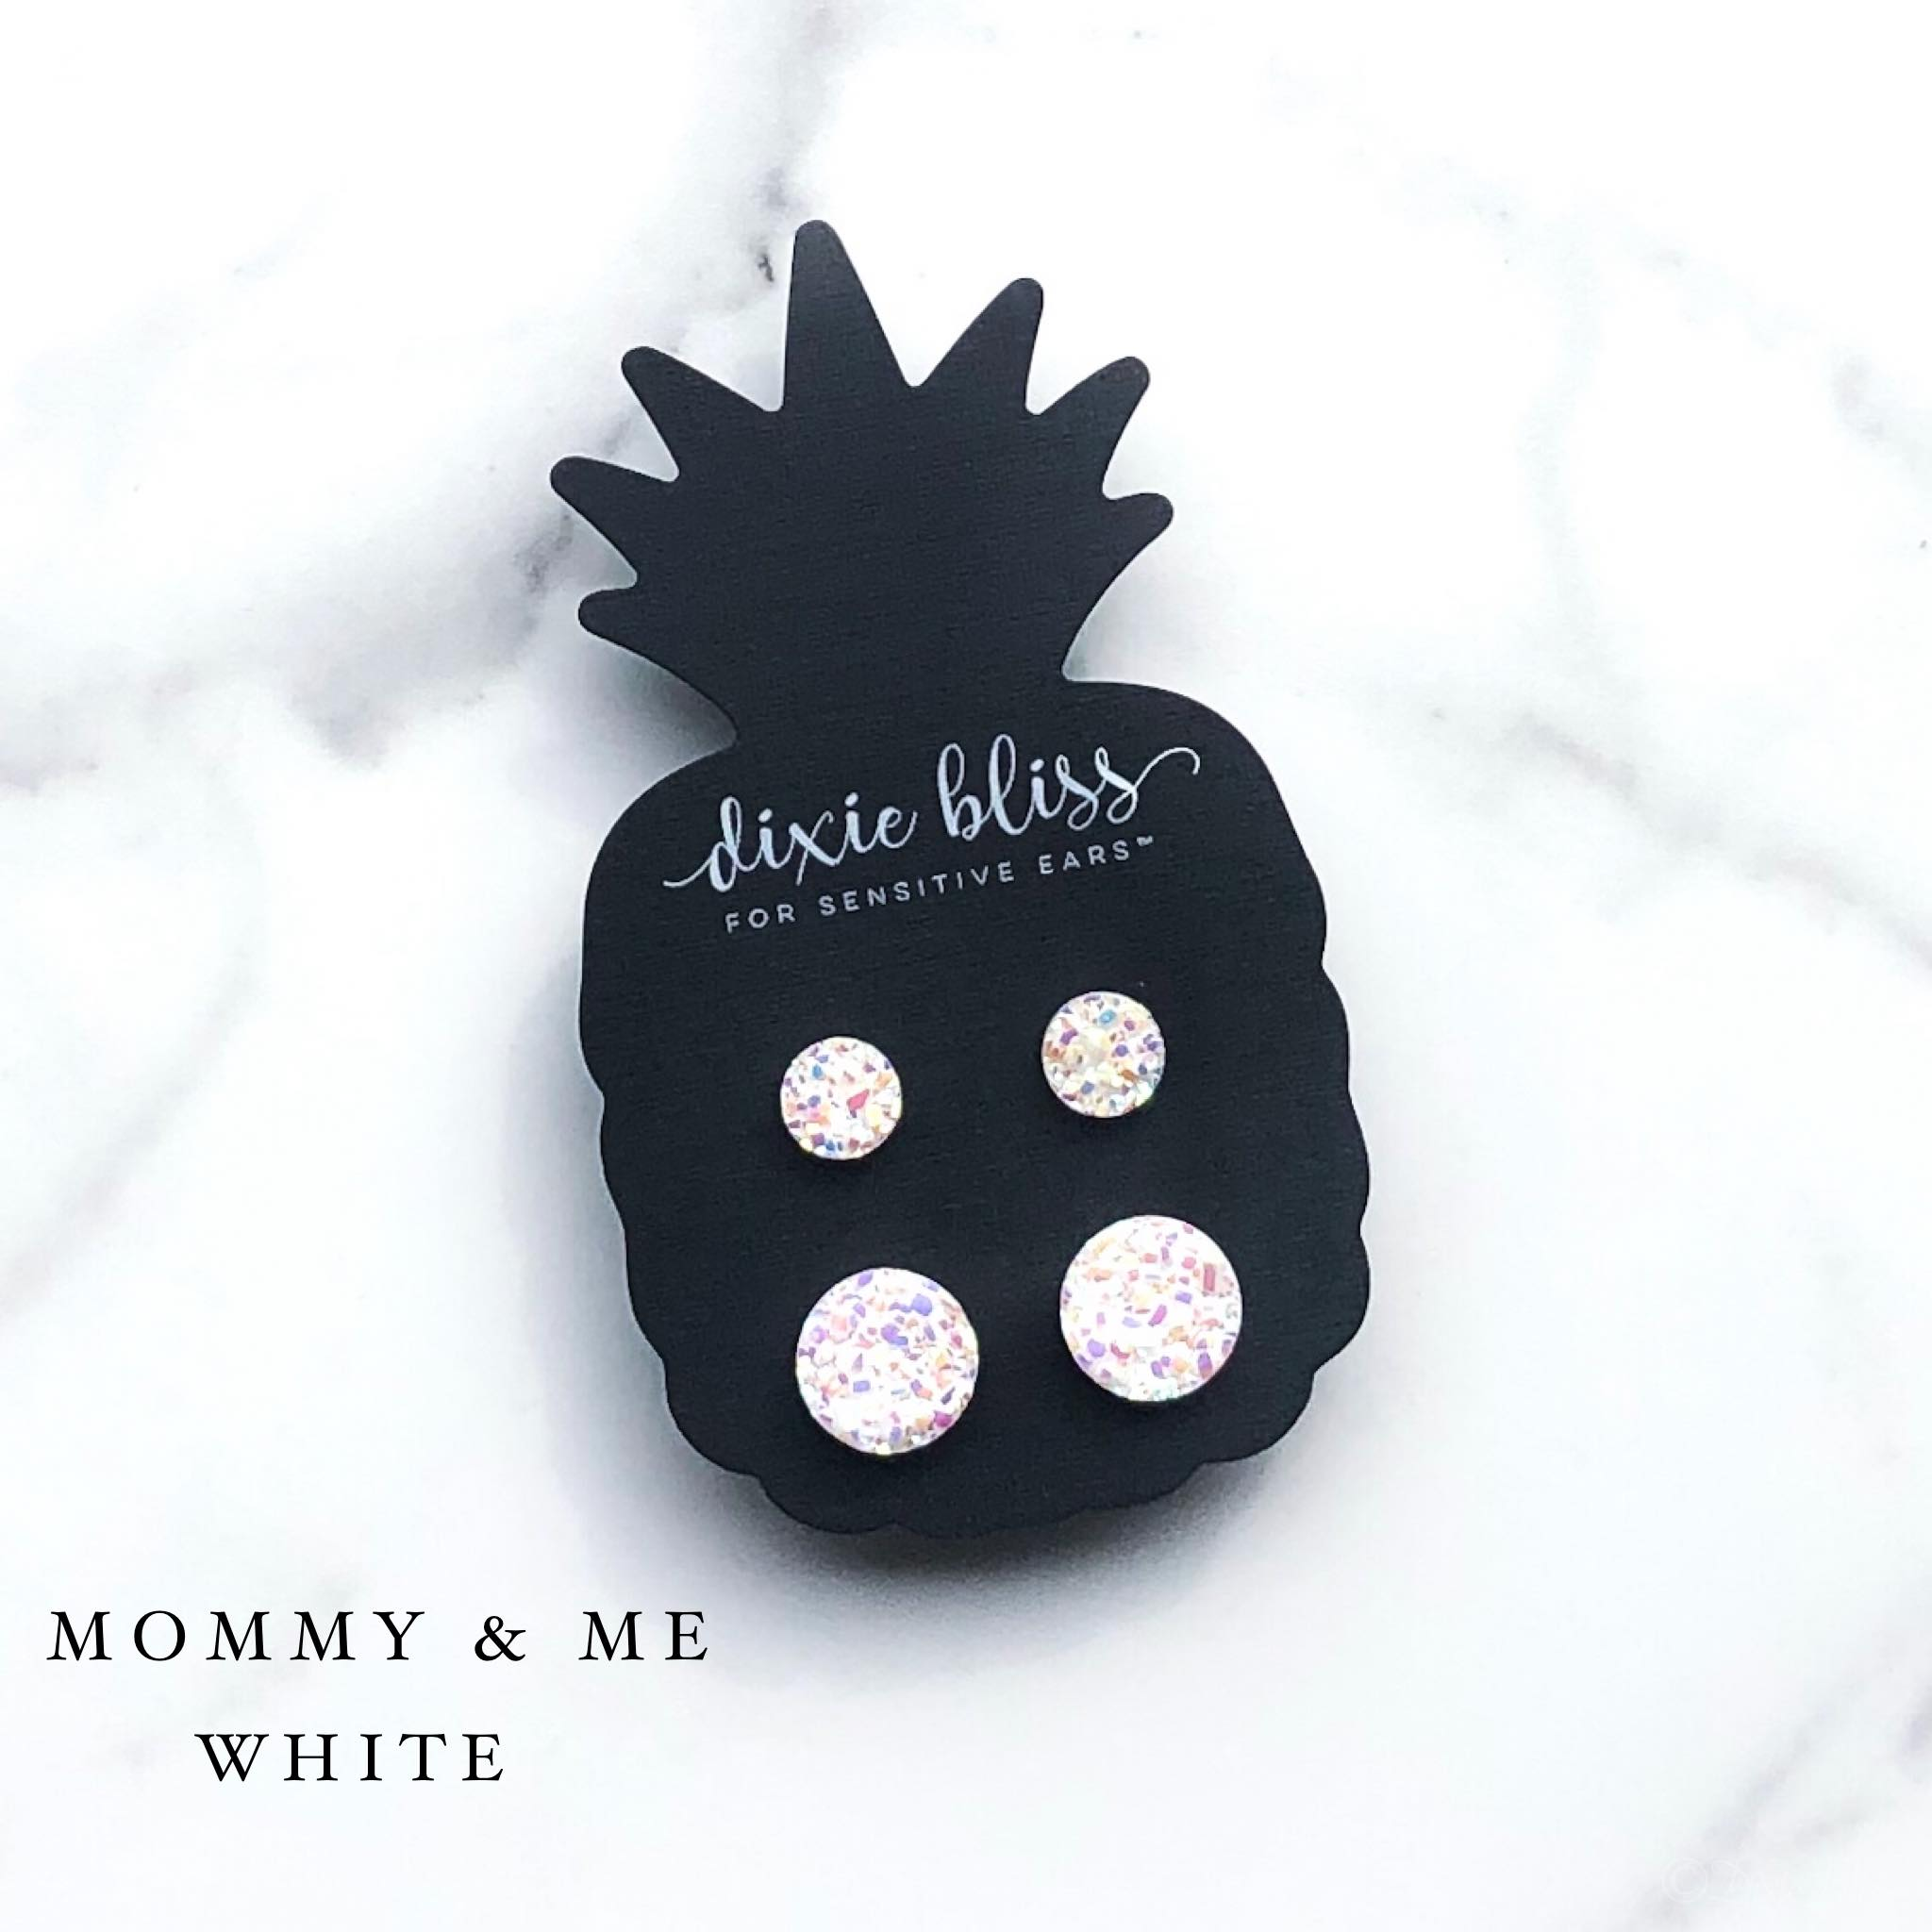 Mommy & Me White - Dixie Bliss - Duo Stud Earring Set